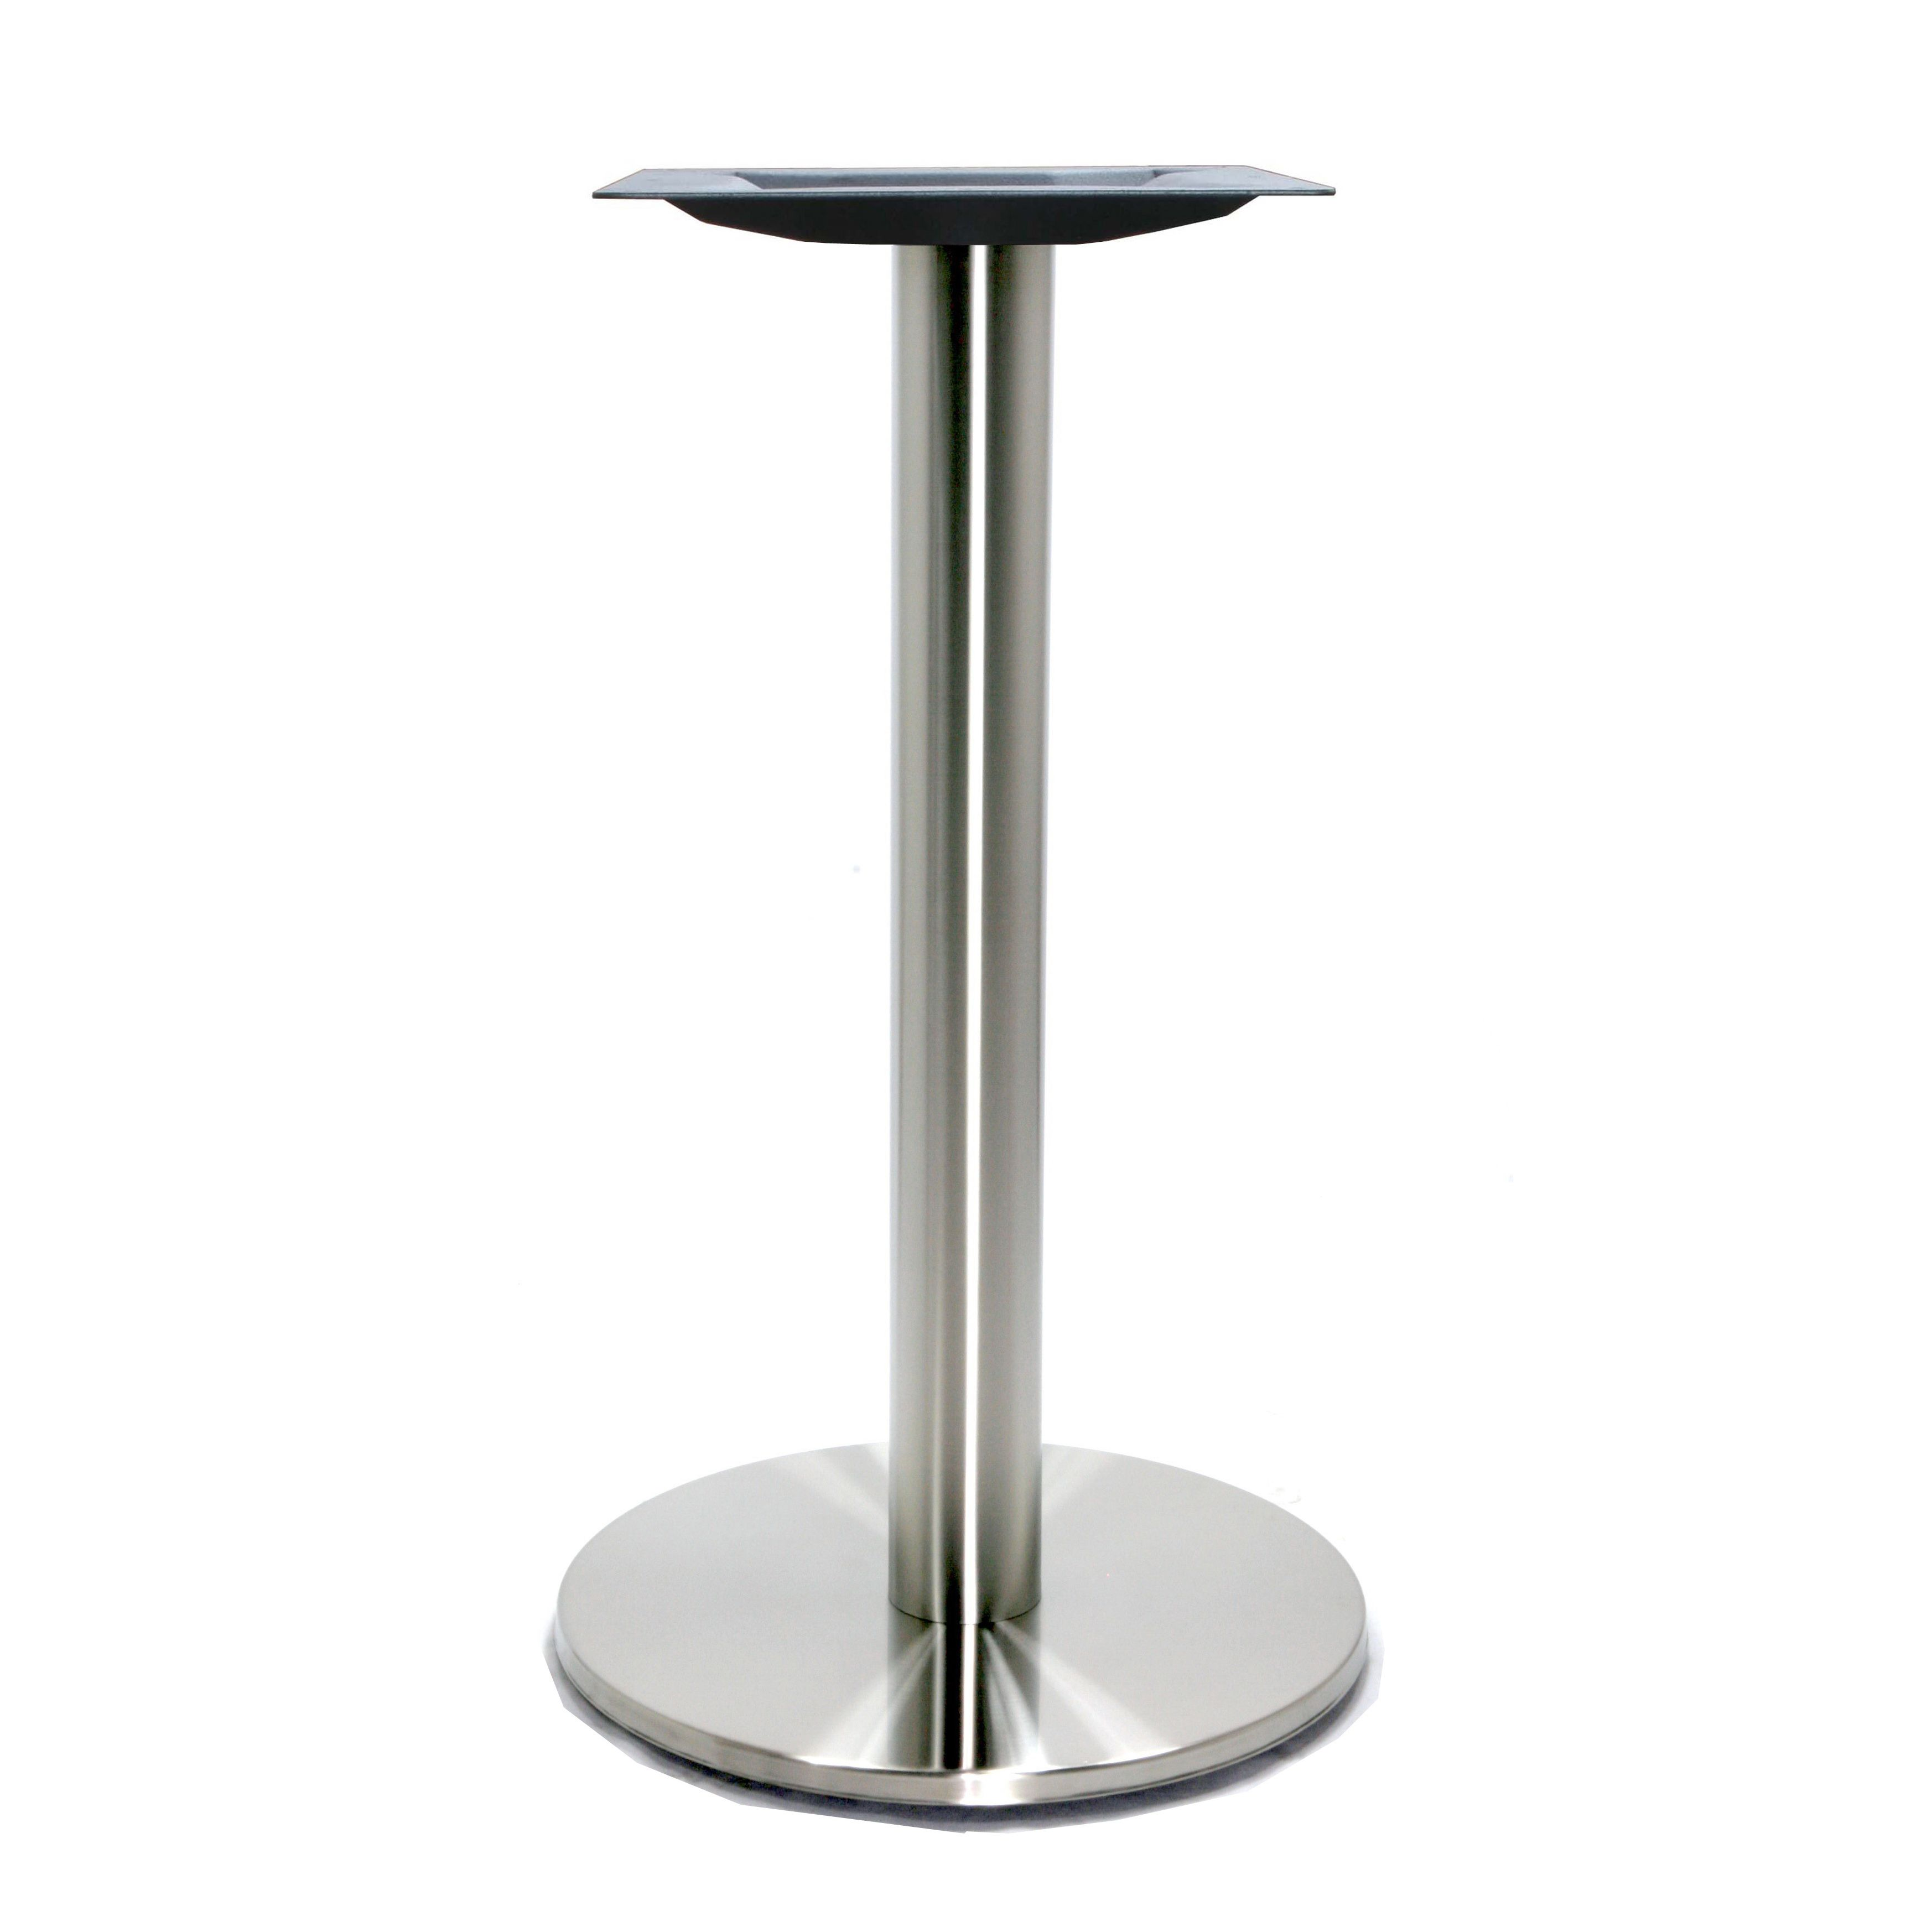 17 Inch Round Stainless Steel Table Base Steel Table Steel Table Base Stainless Steel Table